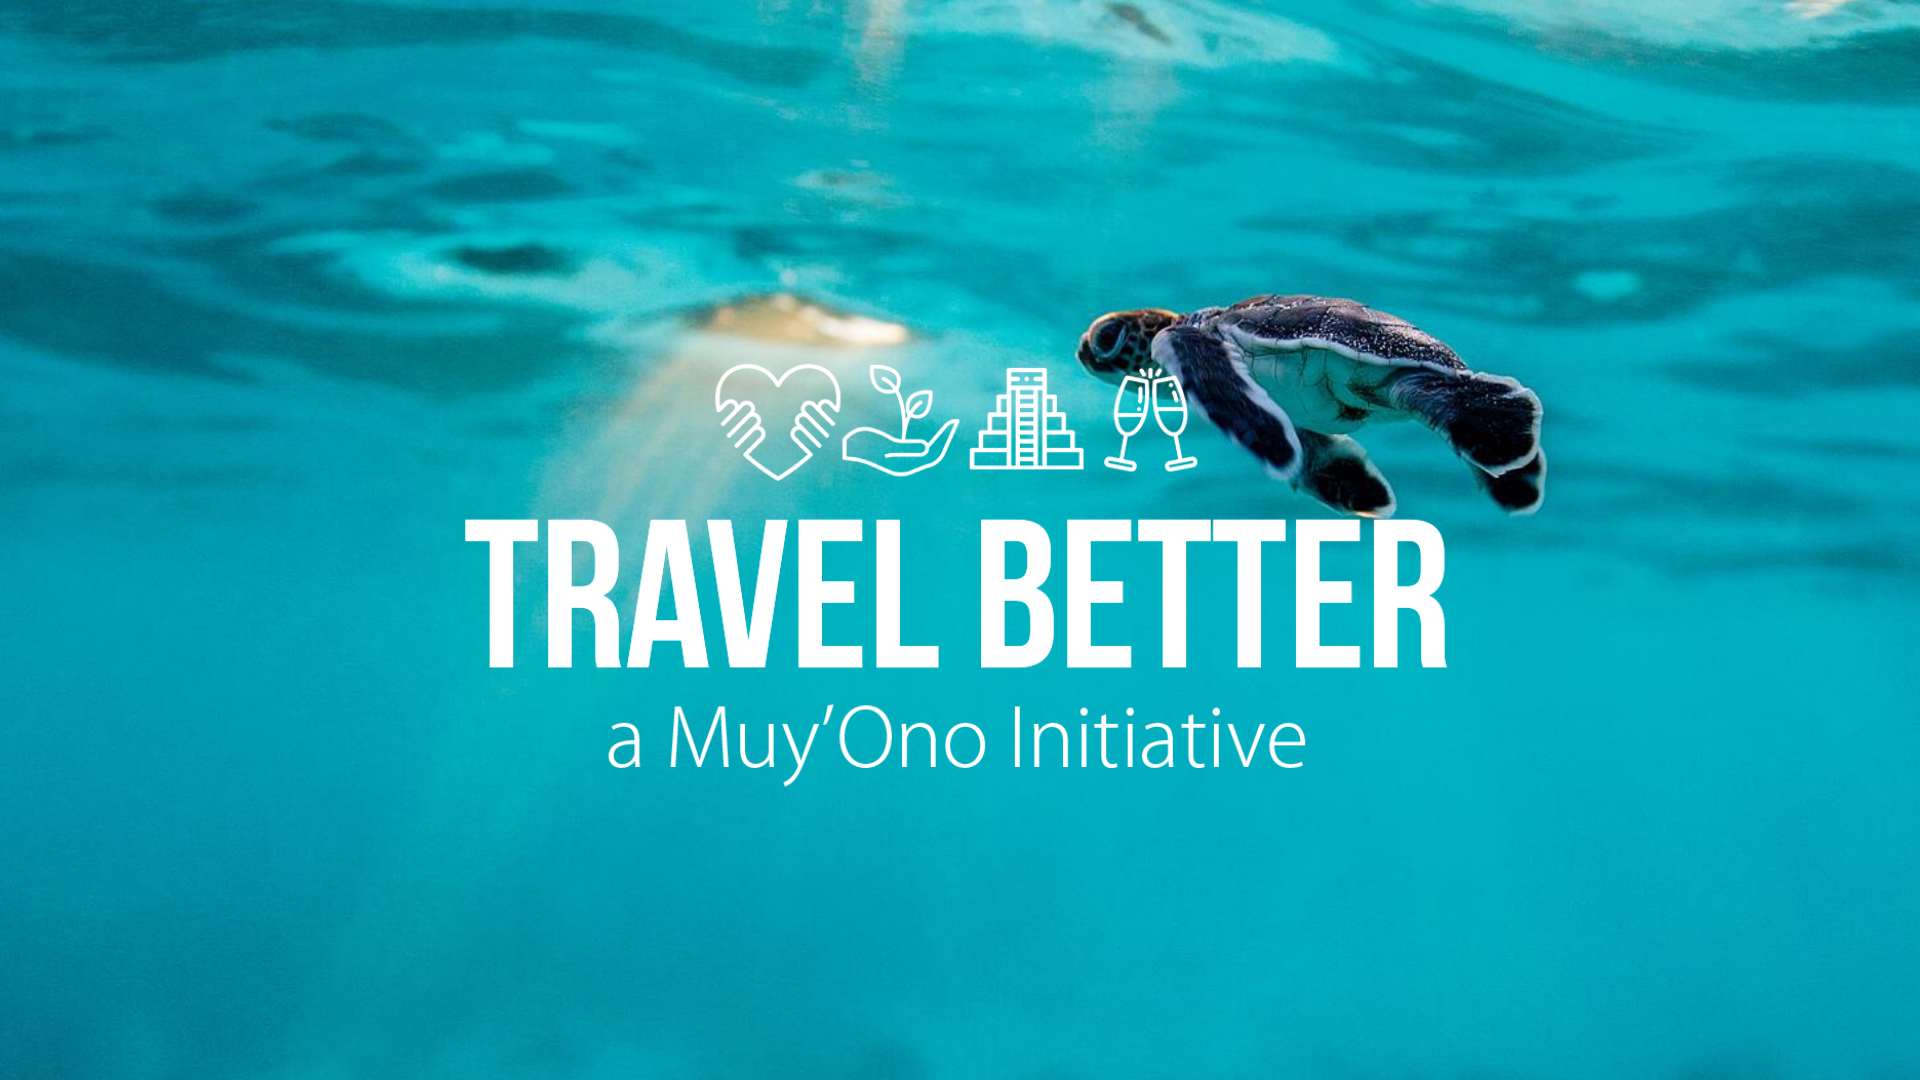 """TRAVEL BETTER   Muy'Ono Resorts believe every traveler should have the opportunity to  travel better . This doesn't just mean better experiences for the traveler, but also making the places traveled to better. That's why Muy'Ono Resorts focus on preserving the beauty of Belize through philanthropy, sustainability, celebrating culture, and creating """"WOW!""""   Learn More"""